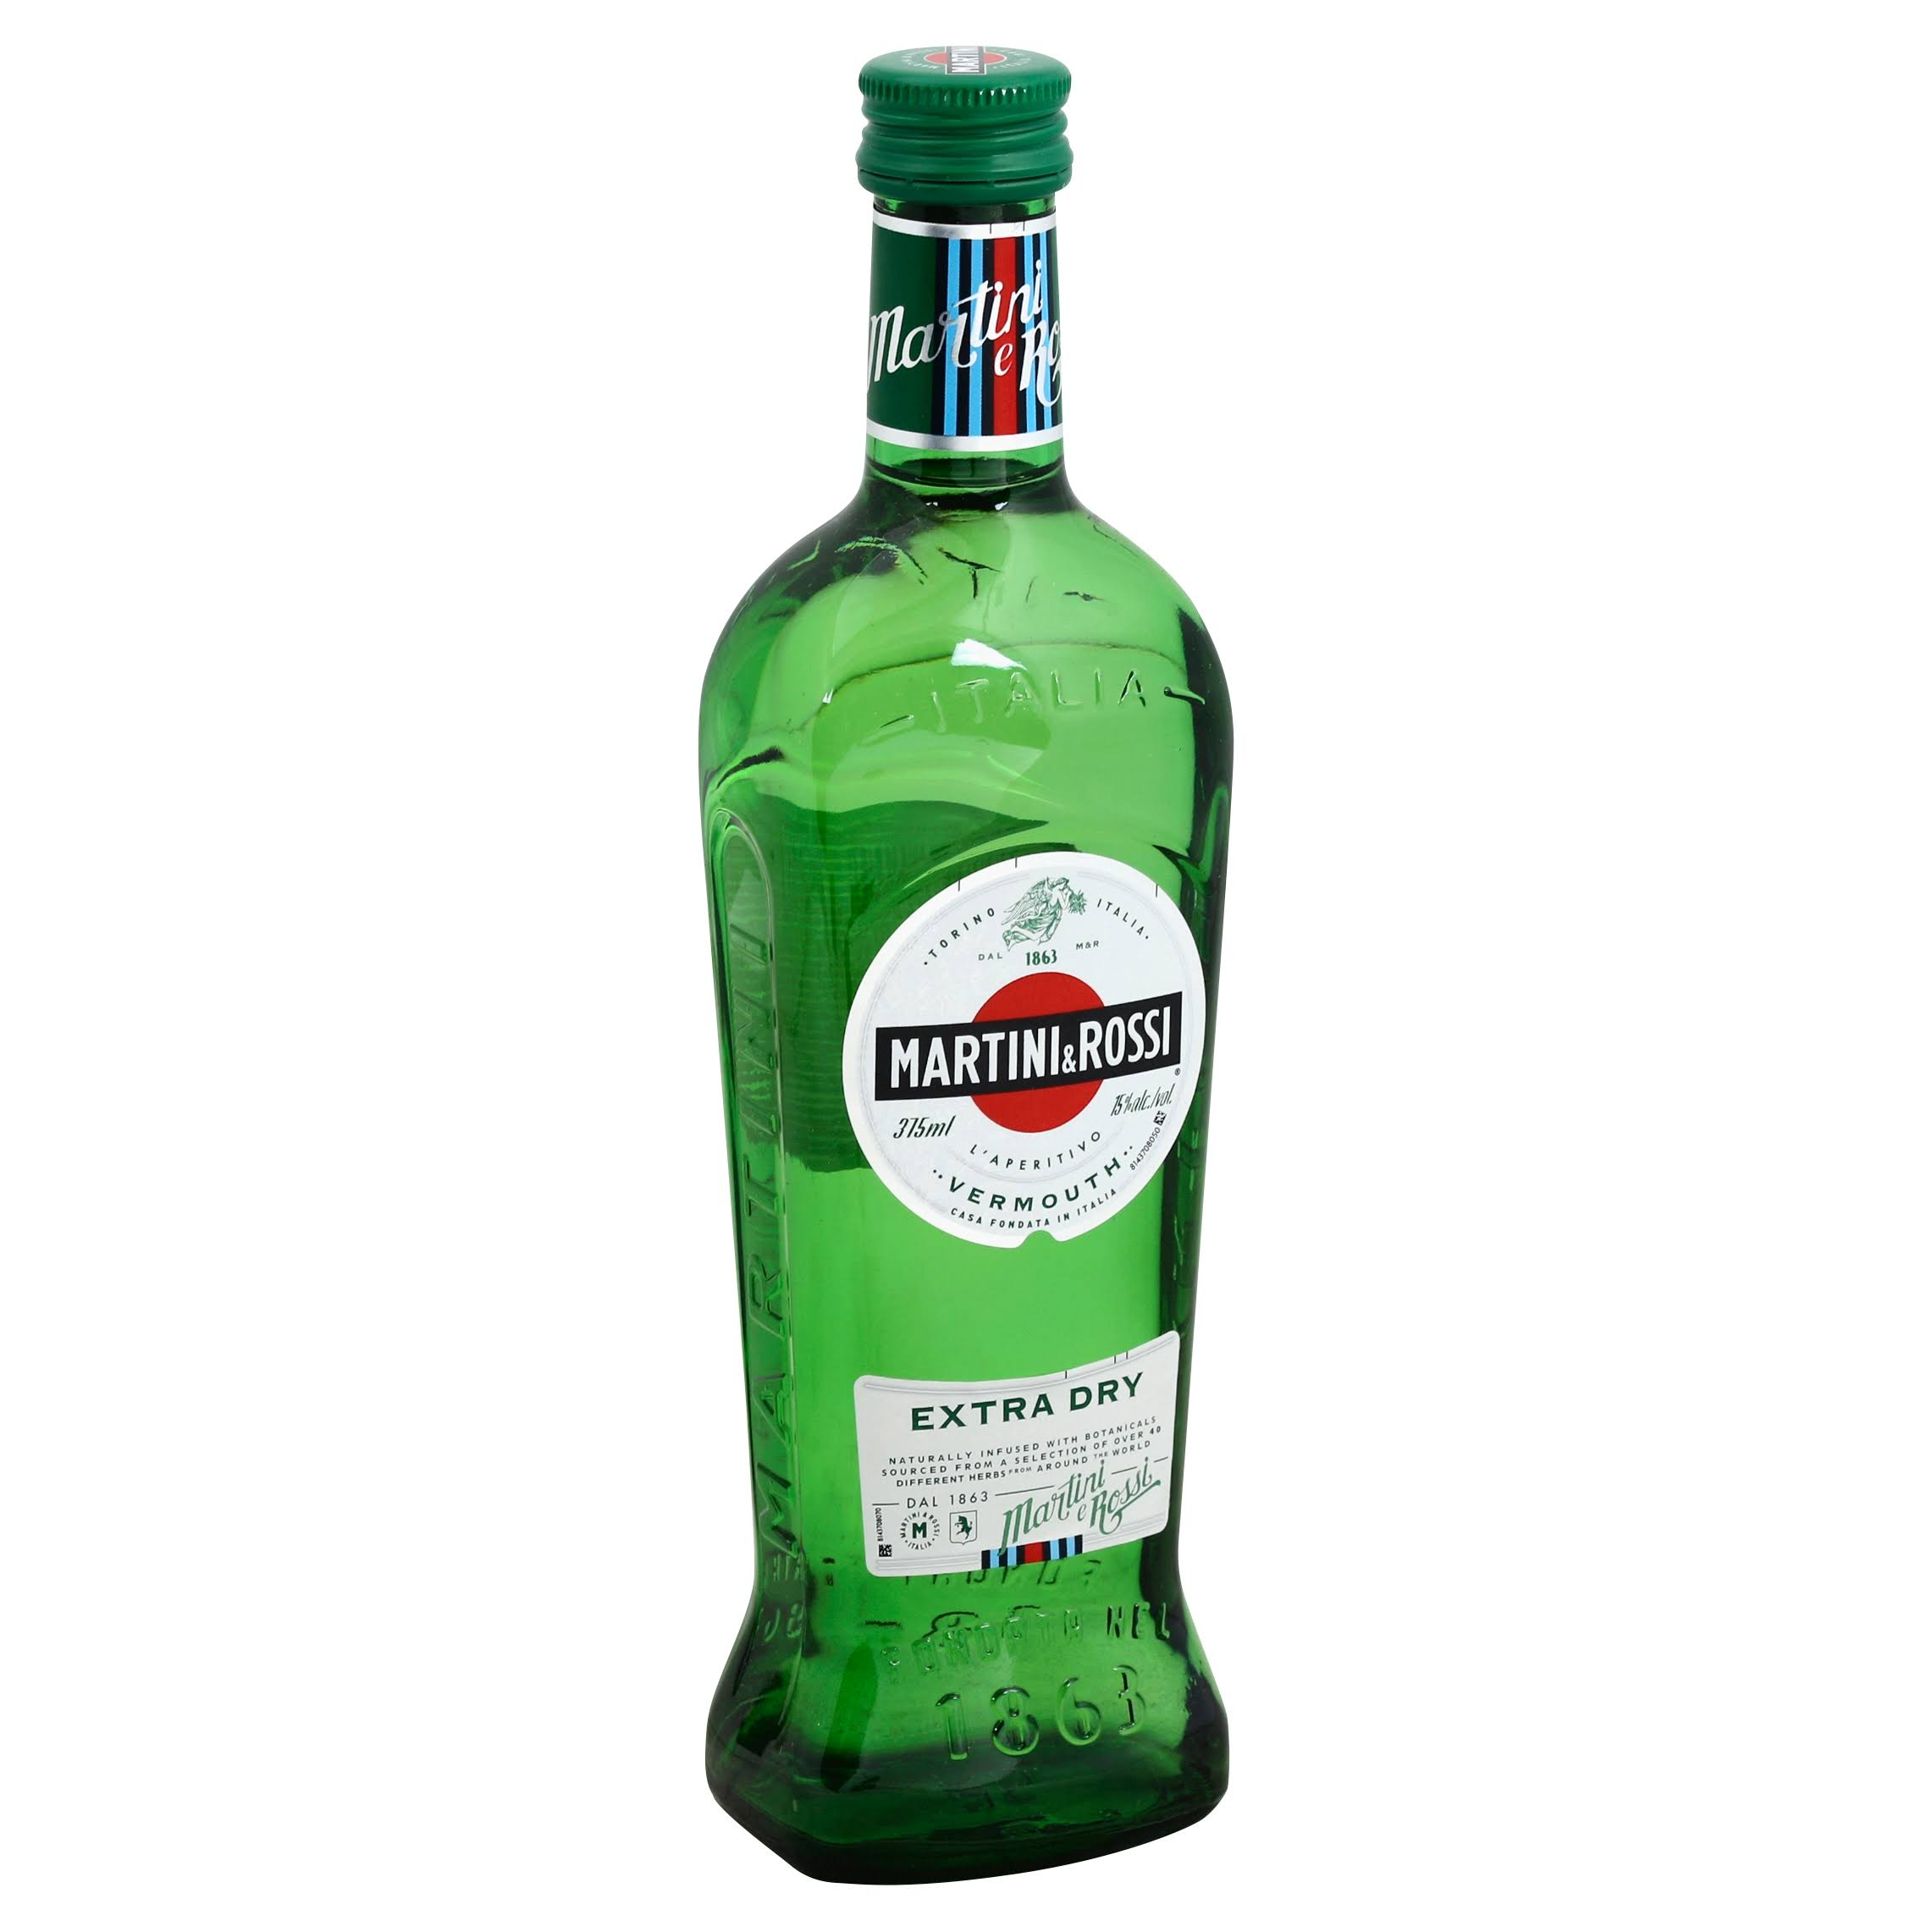 Martini & Rossi Vermouth, Extra Dry - 375 ml